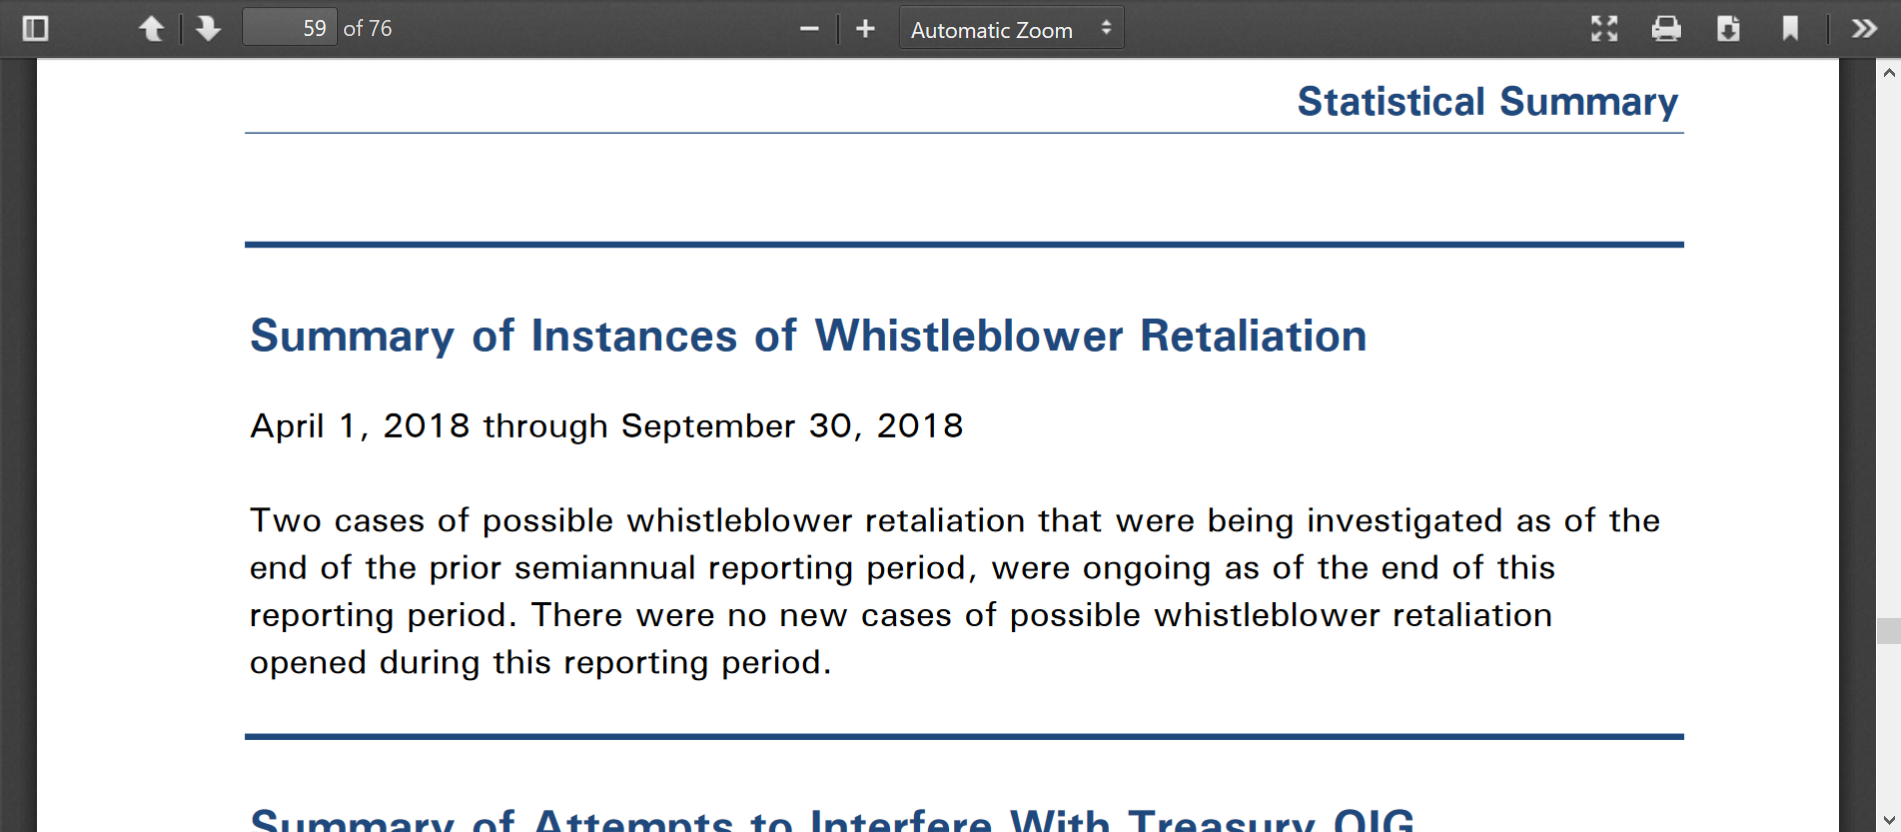 OIG Treasury Sept 2018 76 pages whistleblowers.png